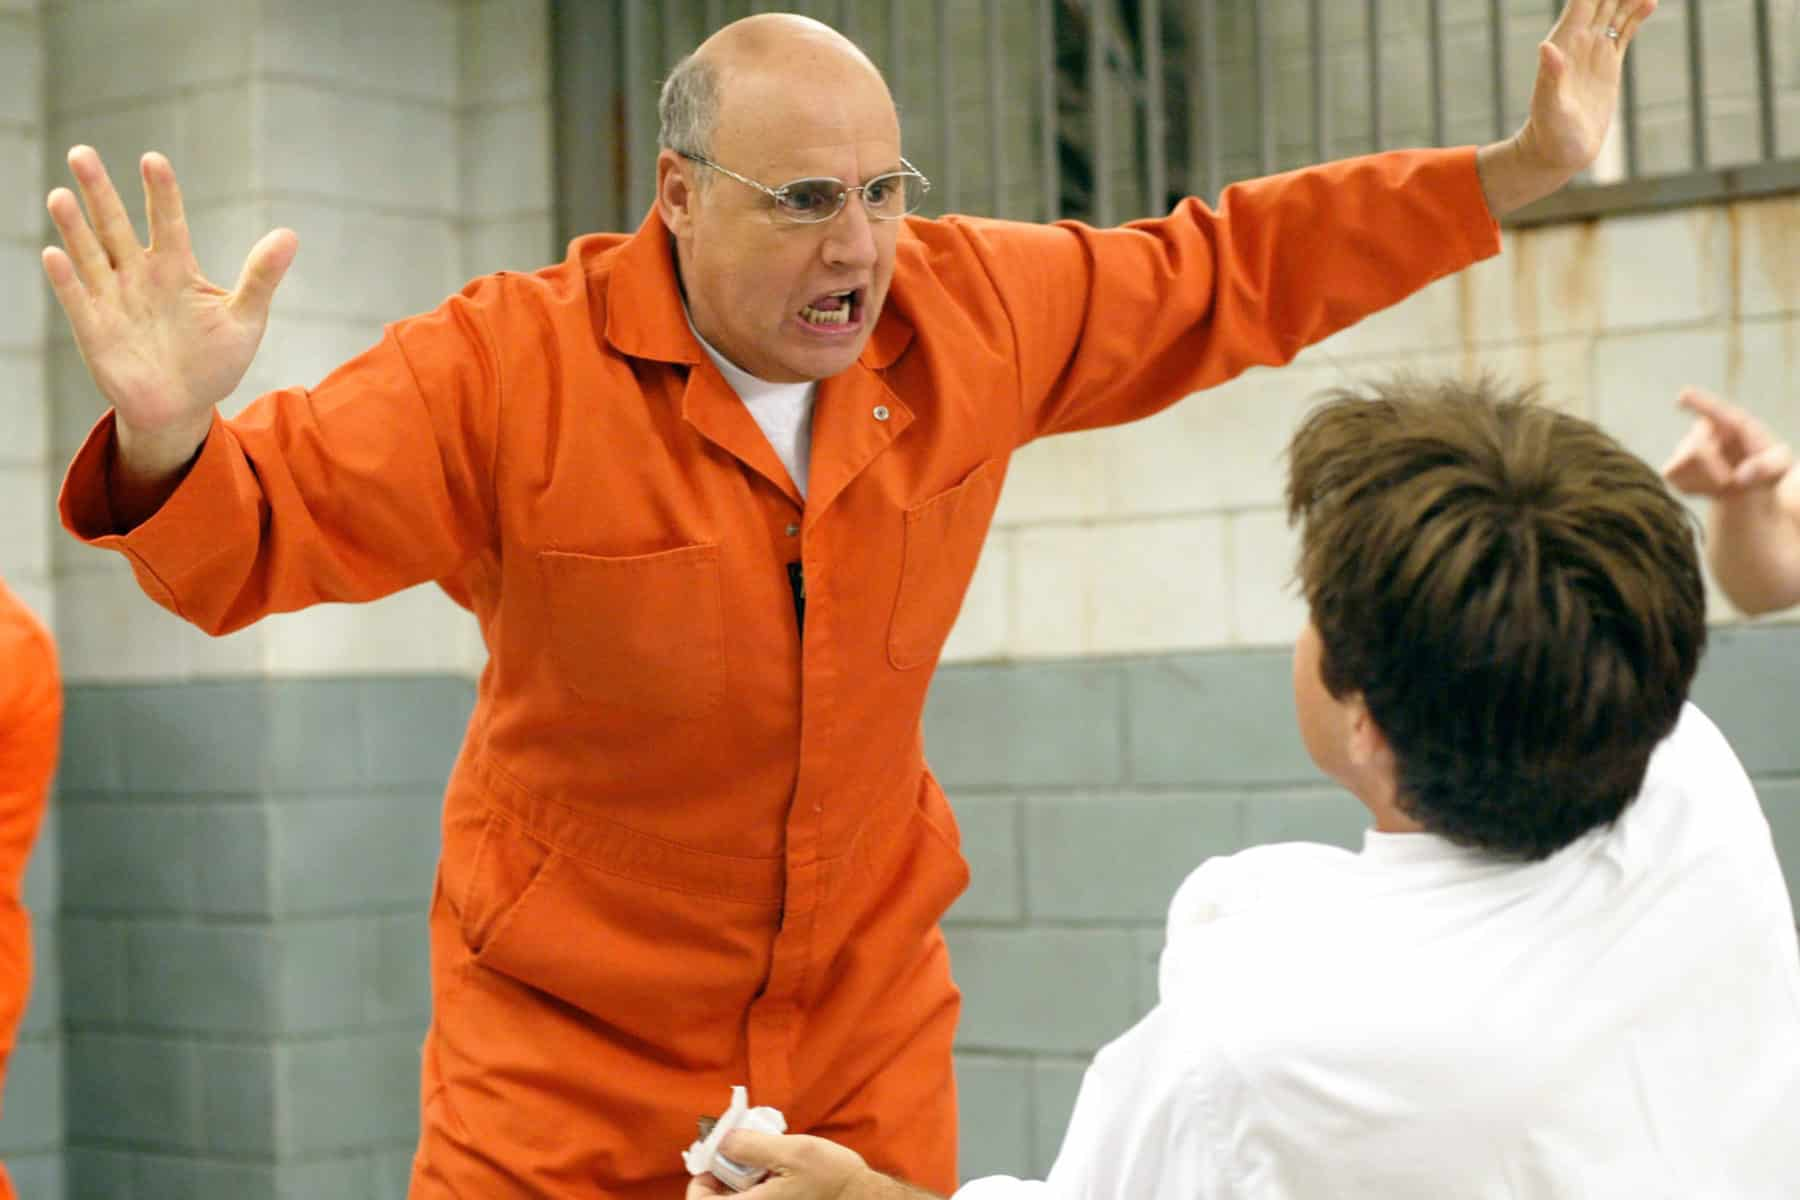 Jeffrey Tambor regresa a quinta temporada de Arrested Development de Netflix